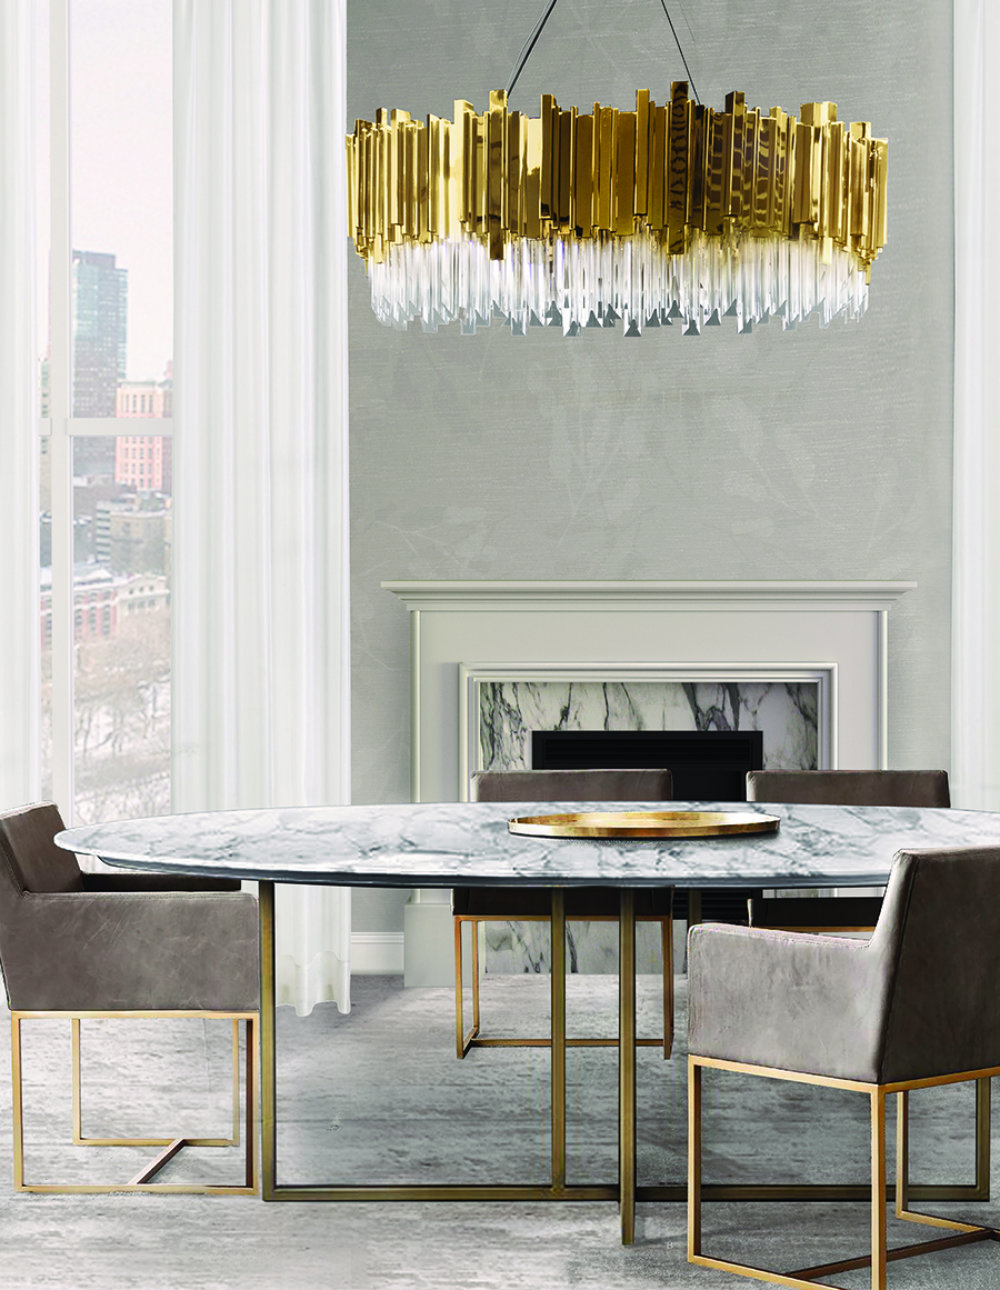 Amazing Chandeliers To Take Your Living Room To The Next Level  living room Amazing Chandeliers To Take Your Living Room To The Next Level  Amazing Chandeliers To Take Your Living Room To The Next Level 3